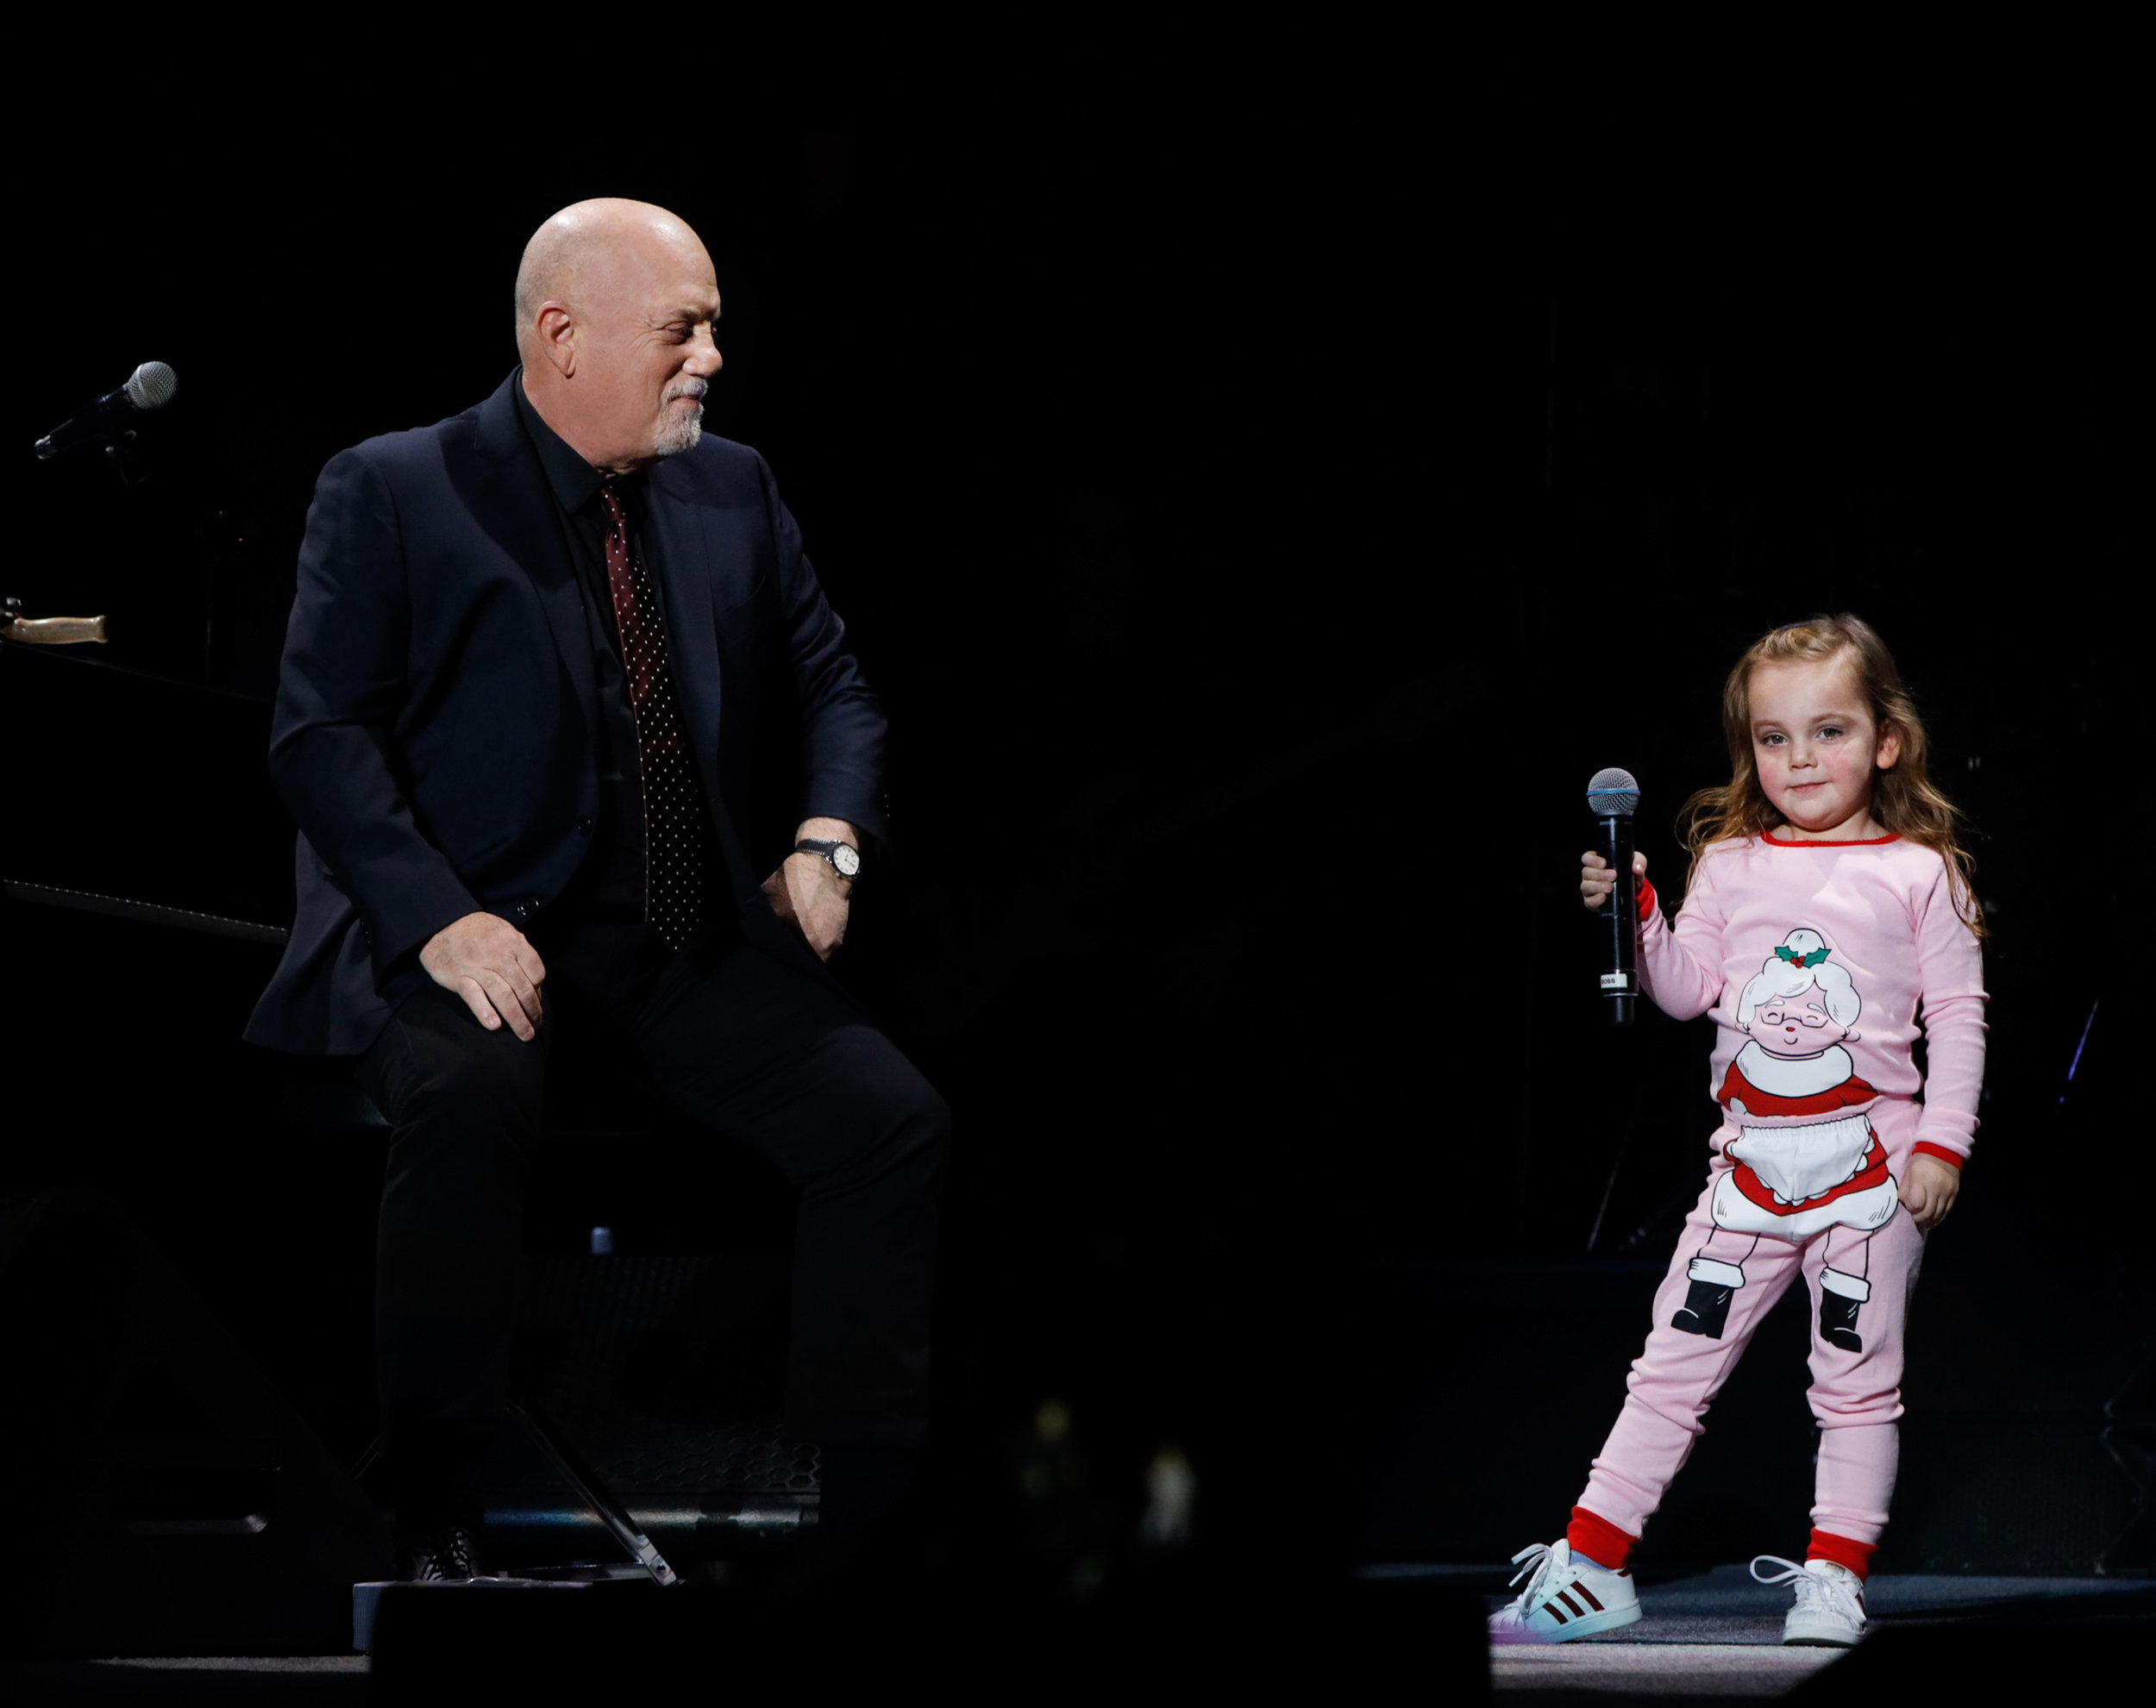 Billy Joel and his daughter, Della, MSG 2018